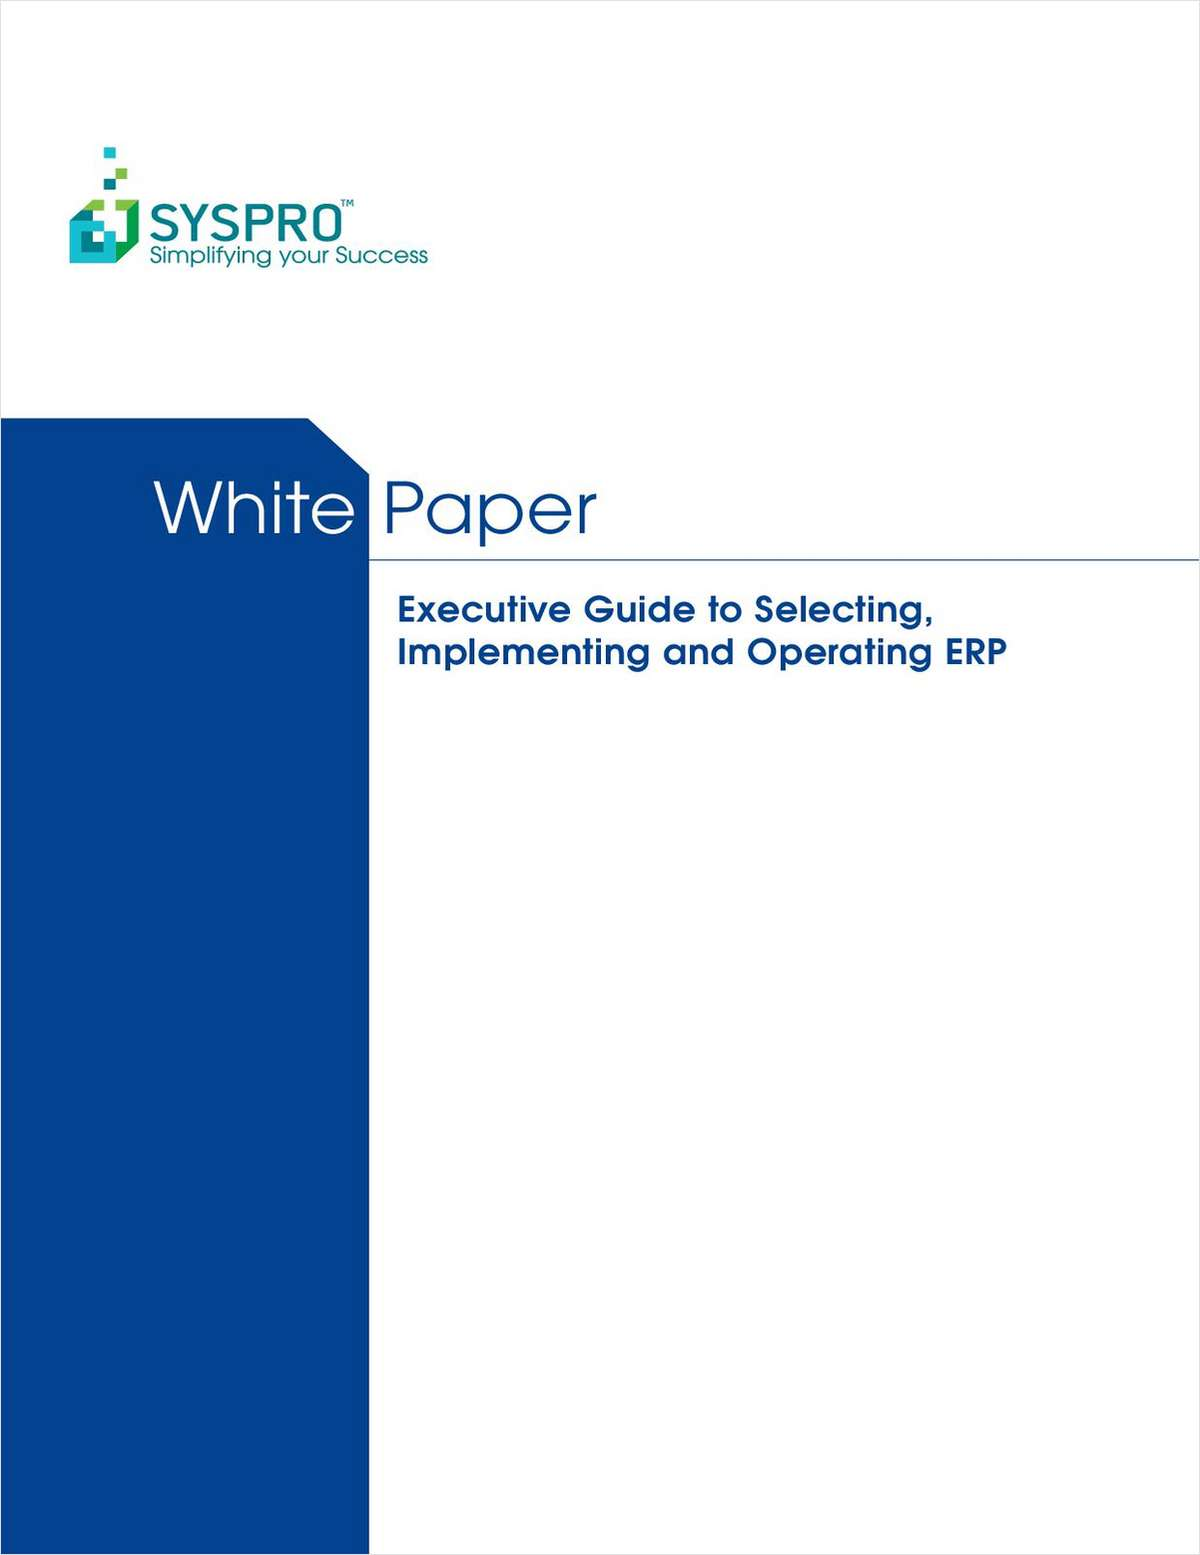 Executive Guide to Selecting, Implementing and Operating ERP